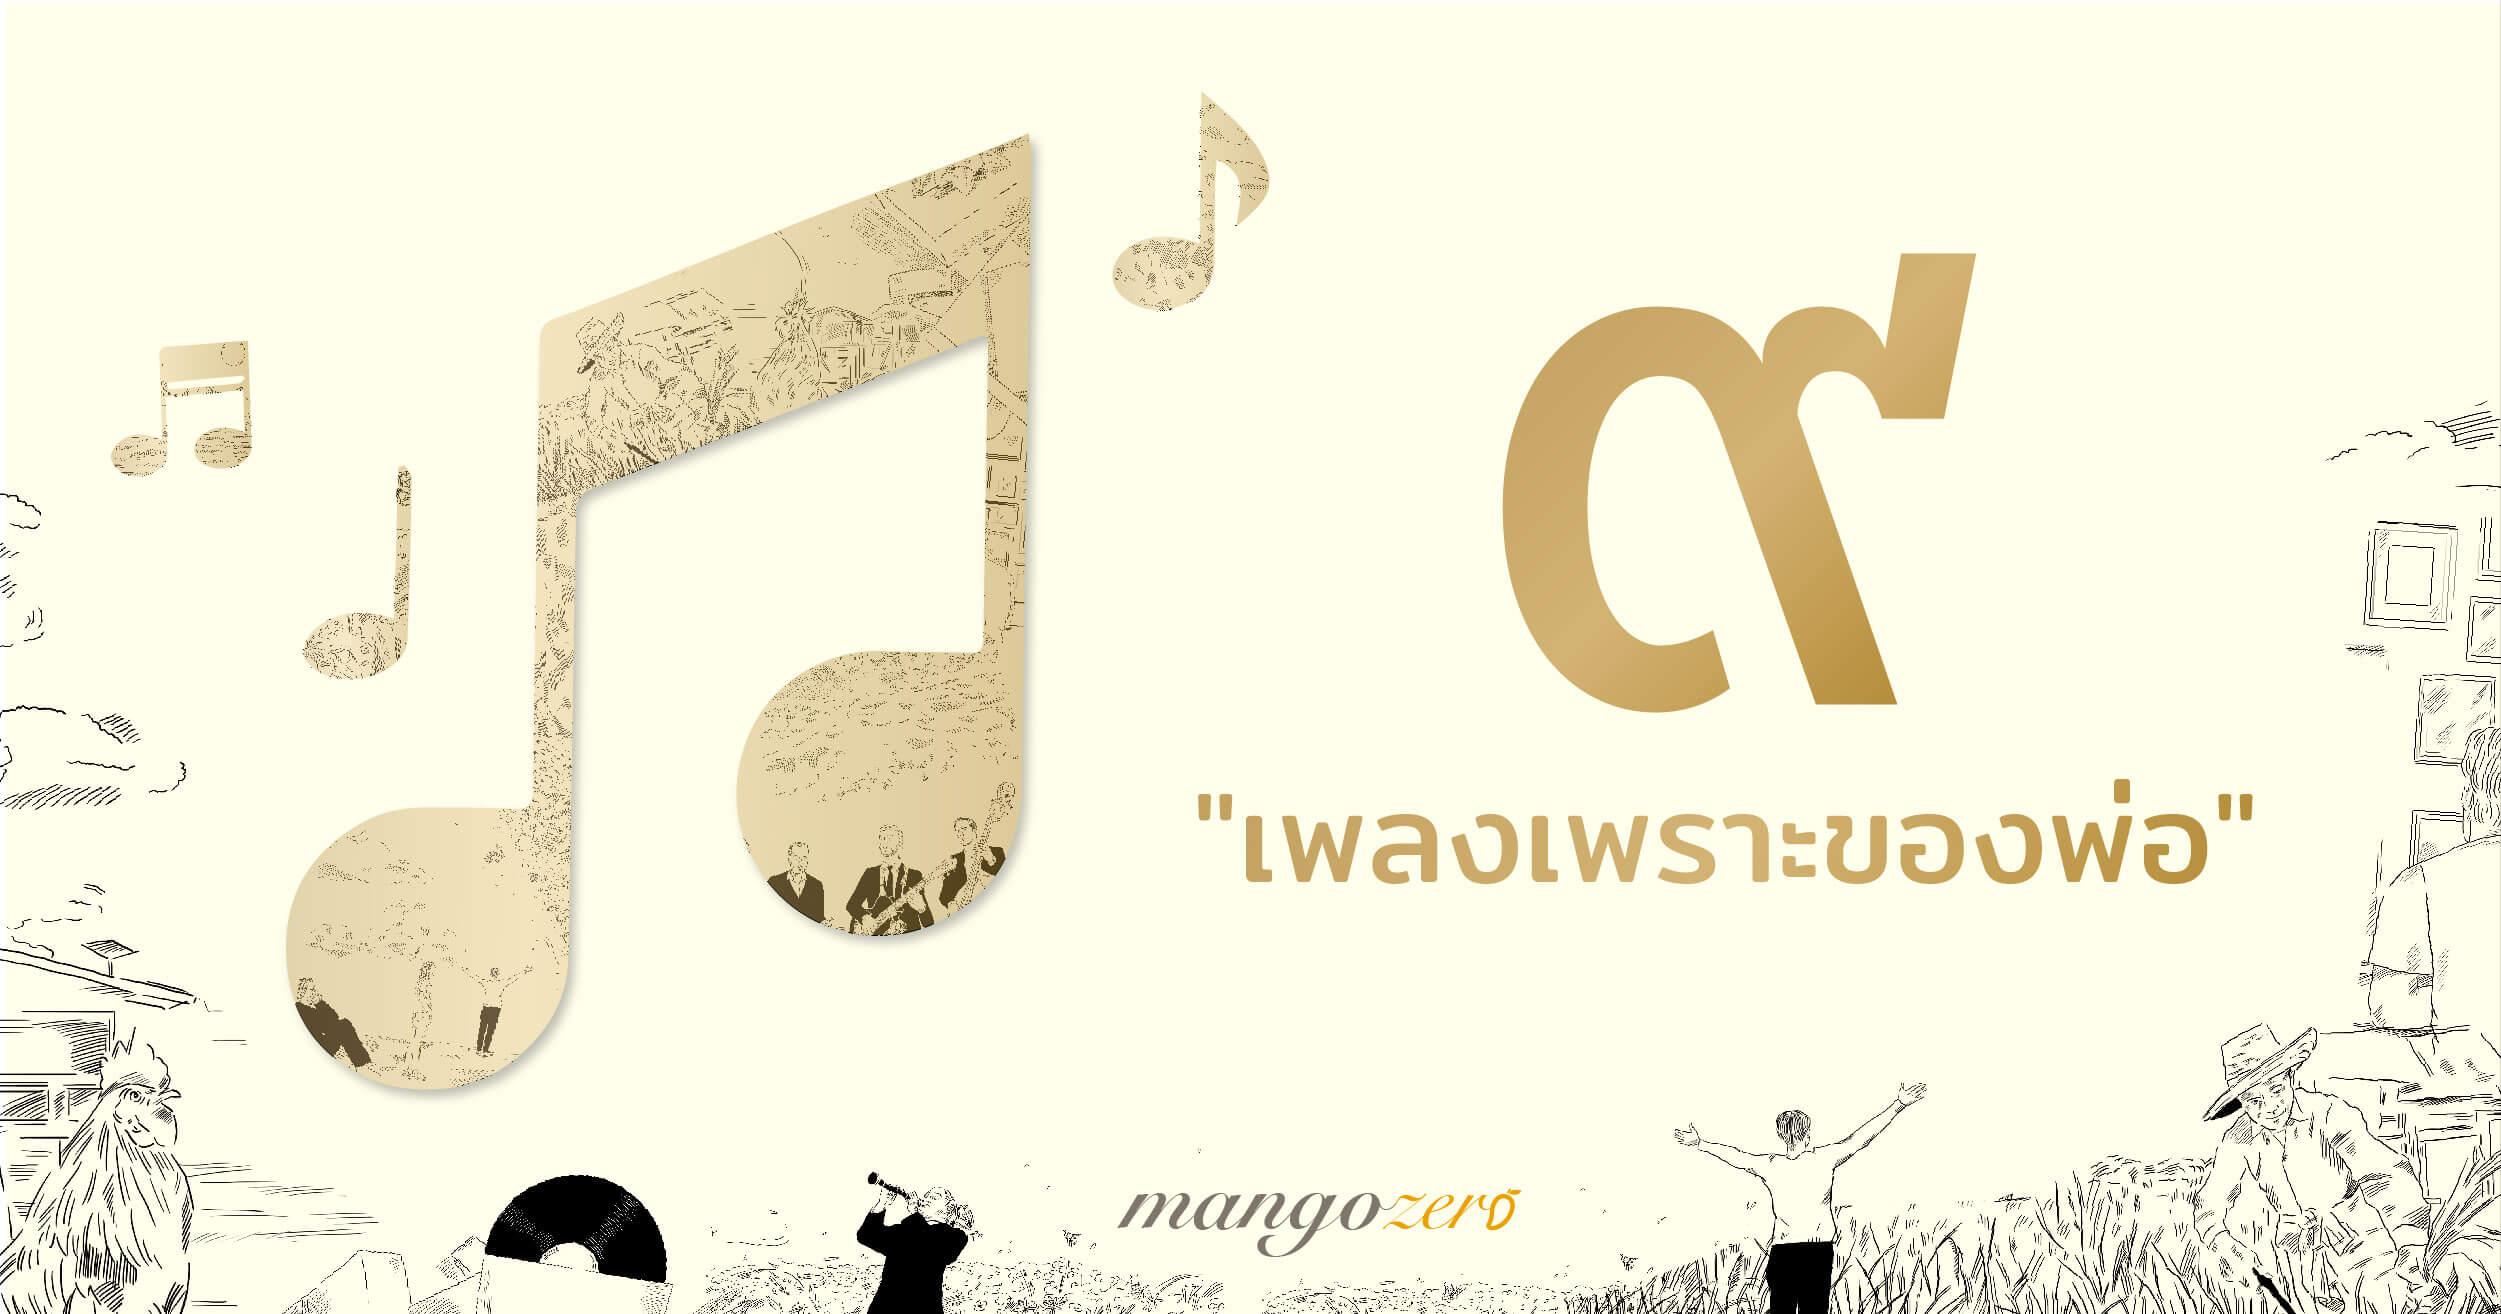 9-royal-songs-from-bhumibol-adulyade-featured